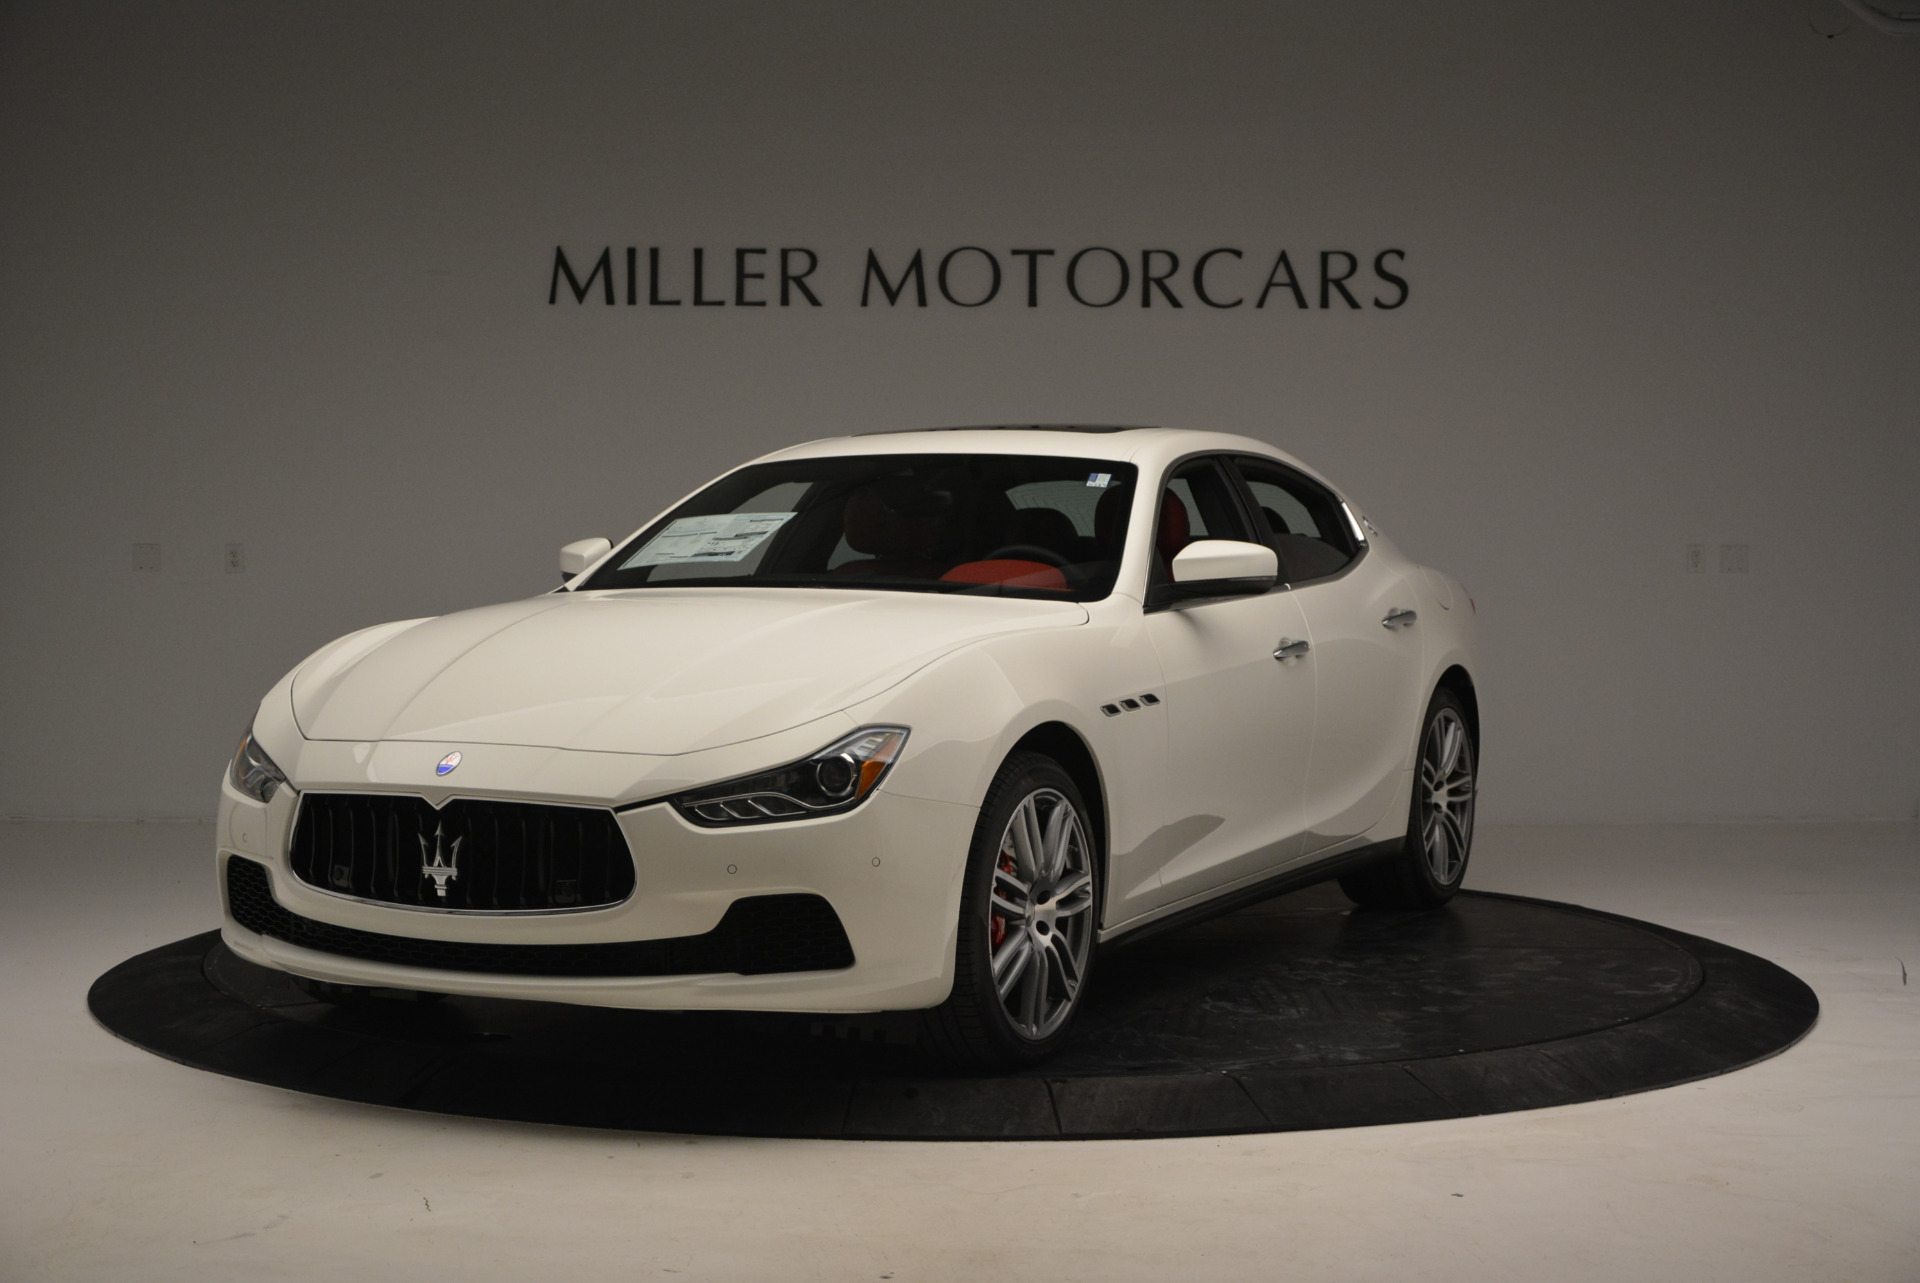 Used 2017 Maserati Ghibli S Q4 for sale $49,900 at Pagani of Greenwich in Greenwich CT 06830 1